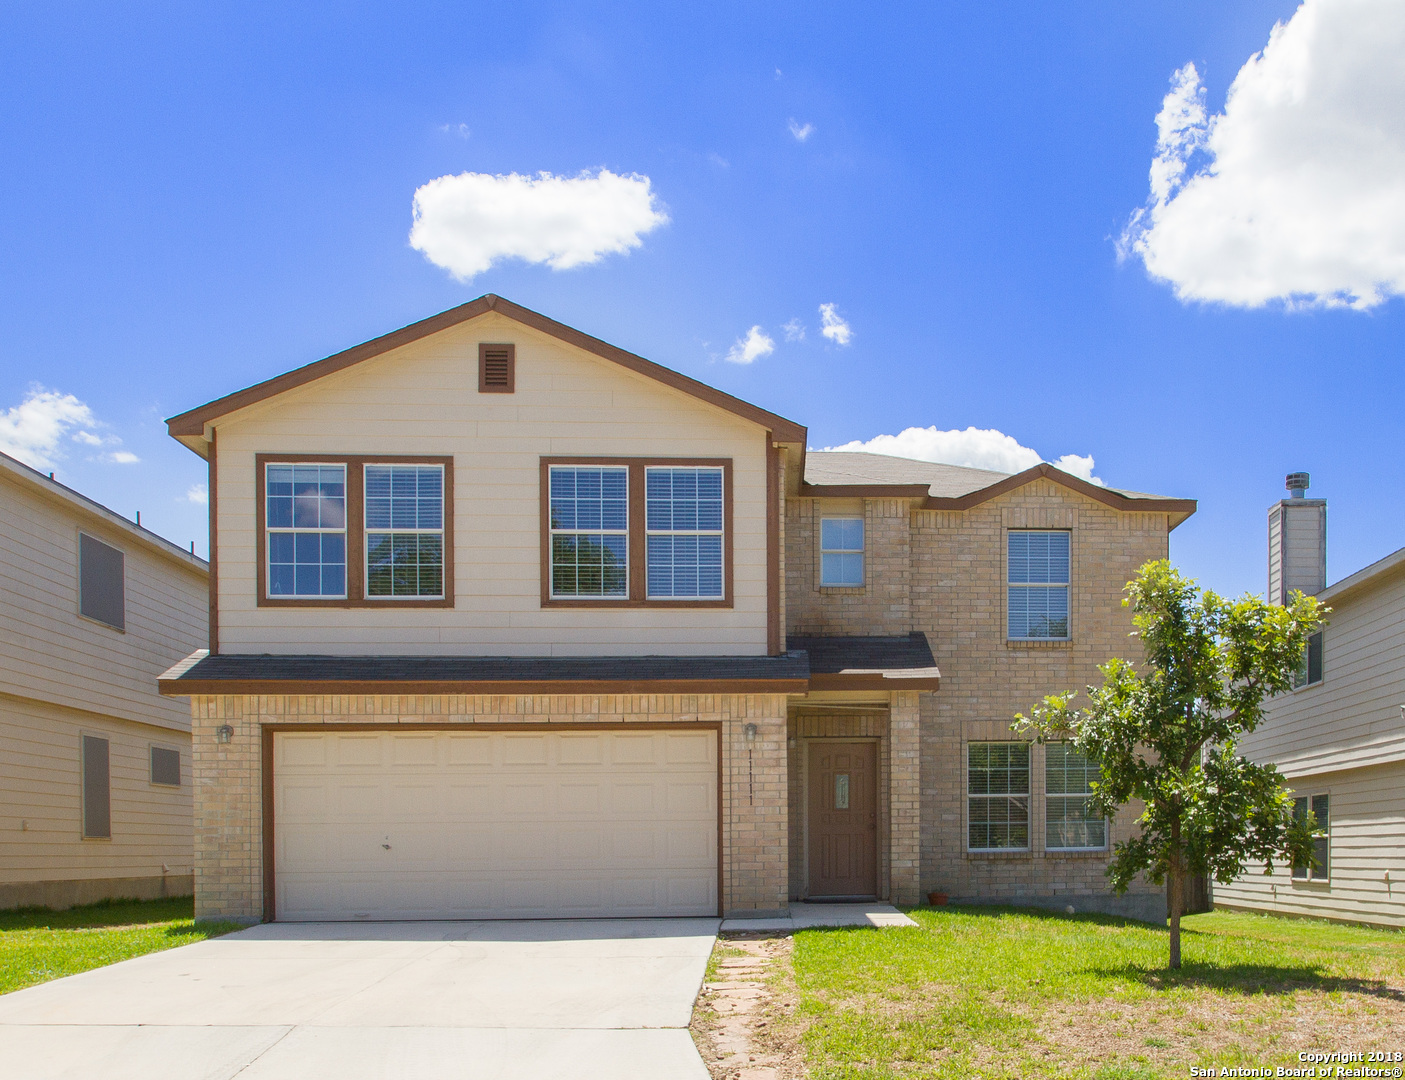 11111-rivera-cove-san-antonio-tx-78249